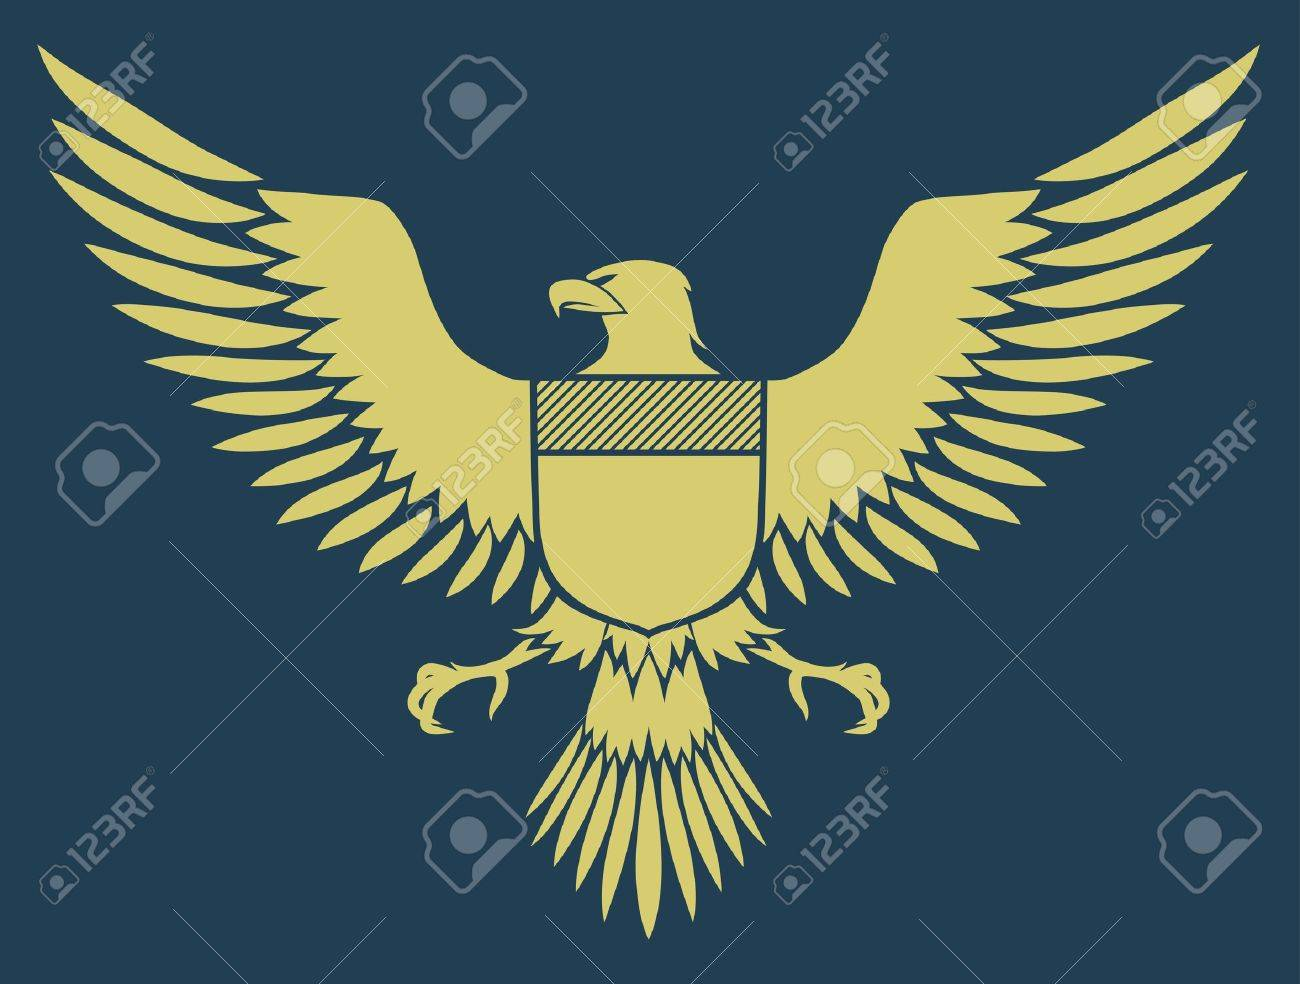 coat-of-arms bird - Medieval Eagle of my own design Stock Photo - 5268172